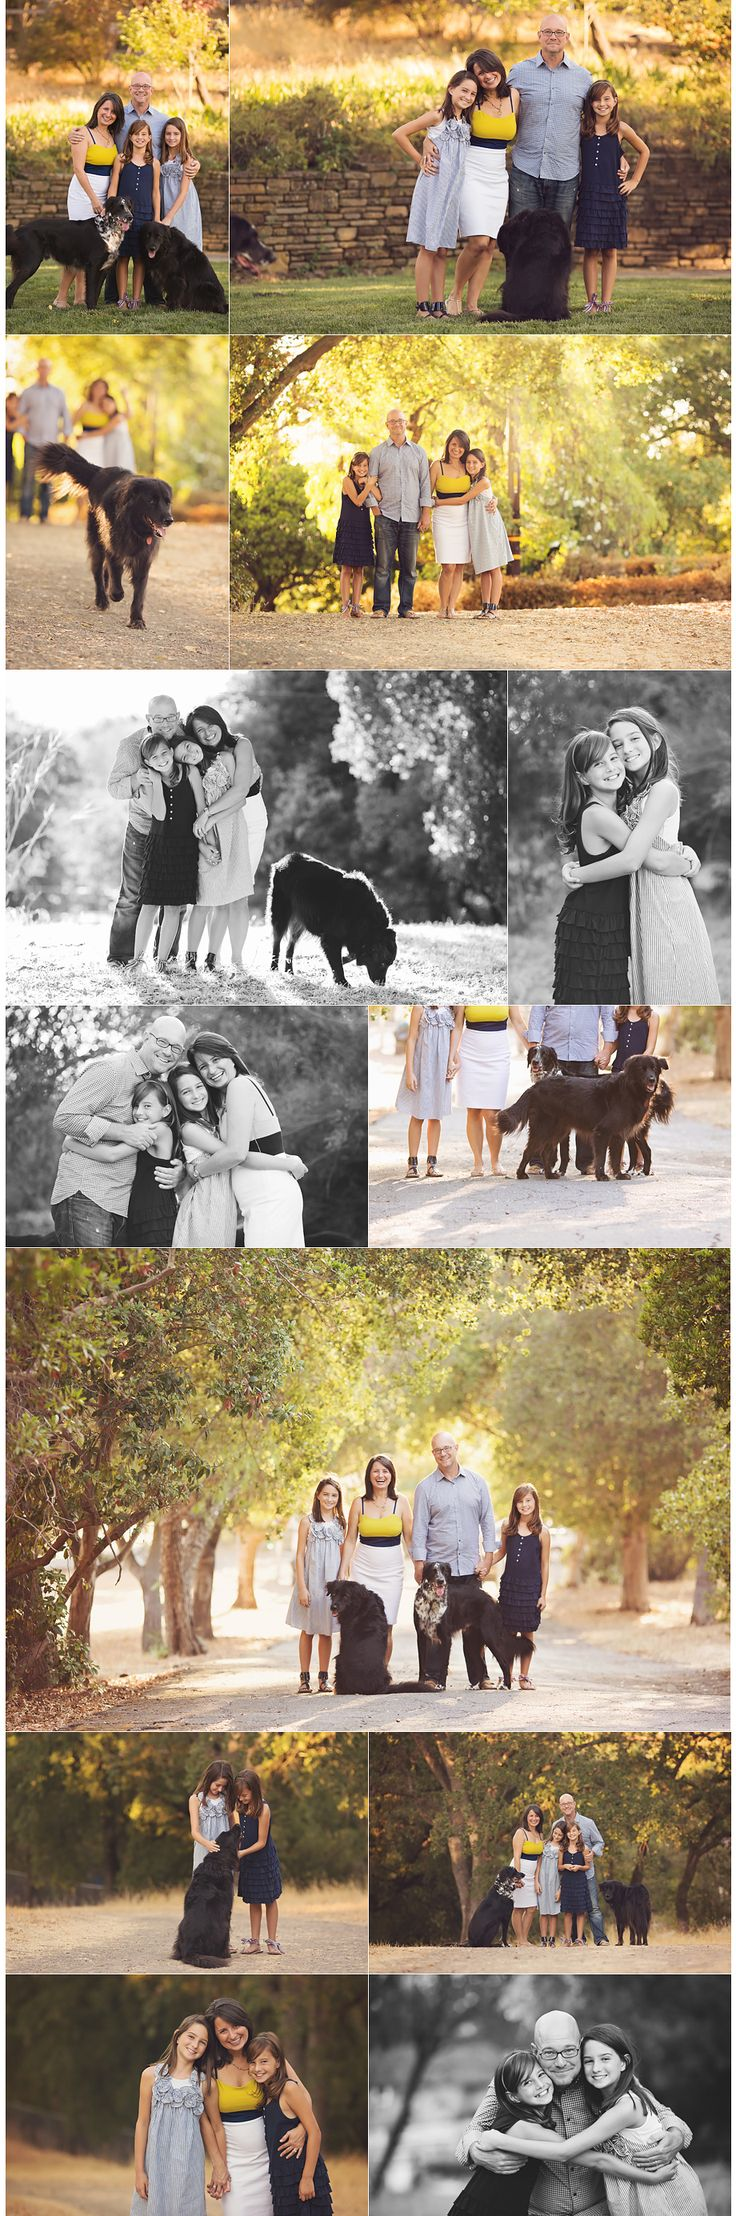 Sweet family shots with young teens and puppies.